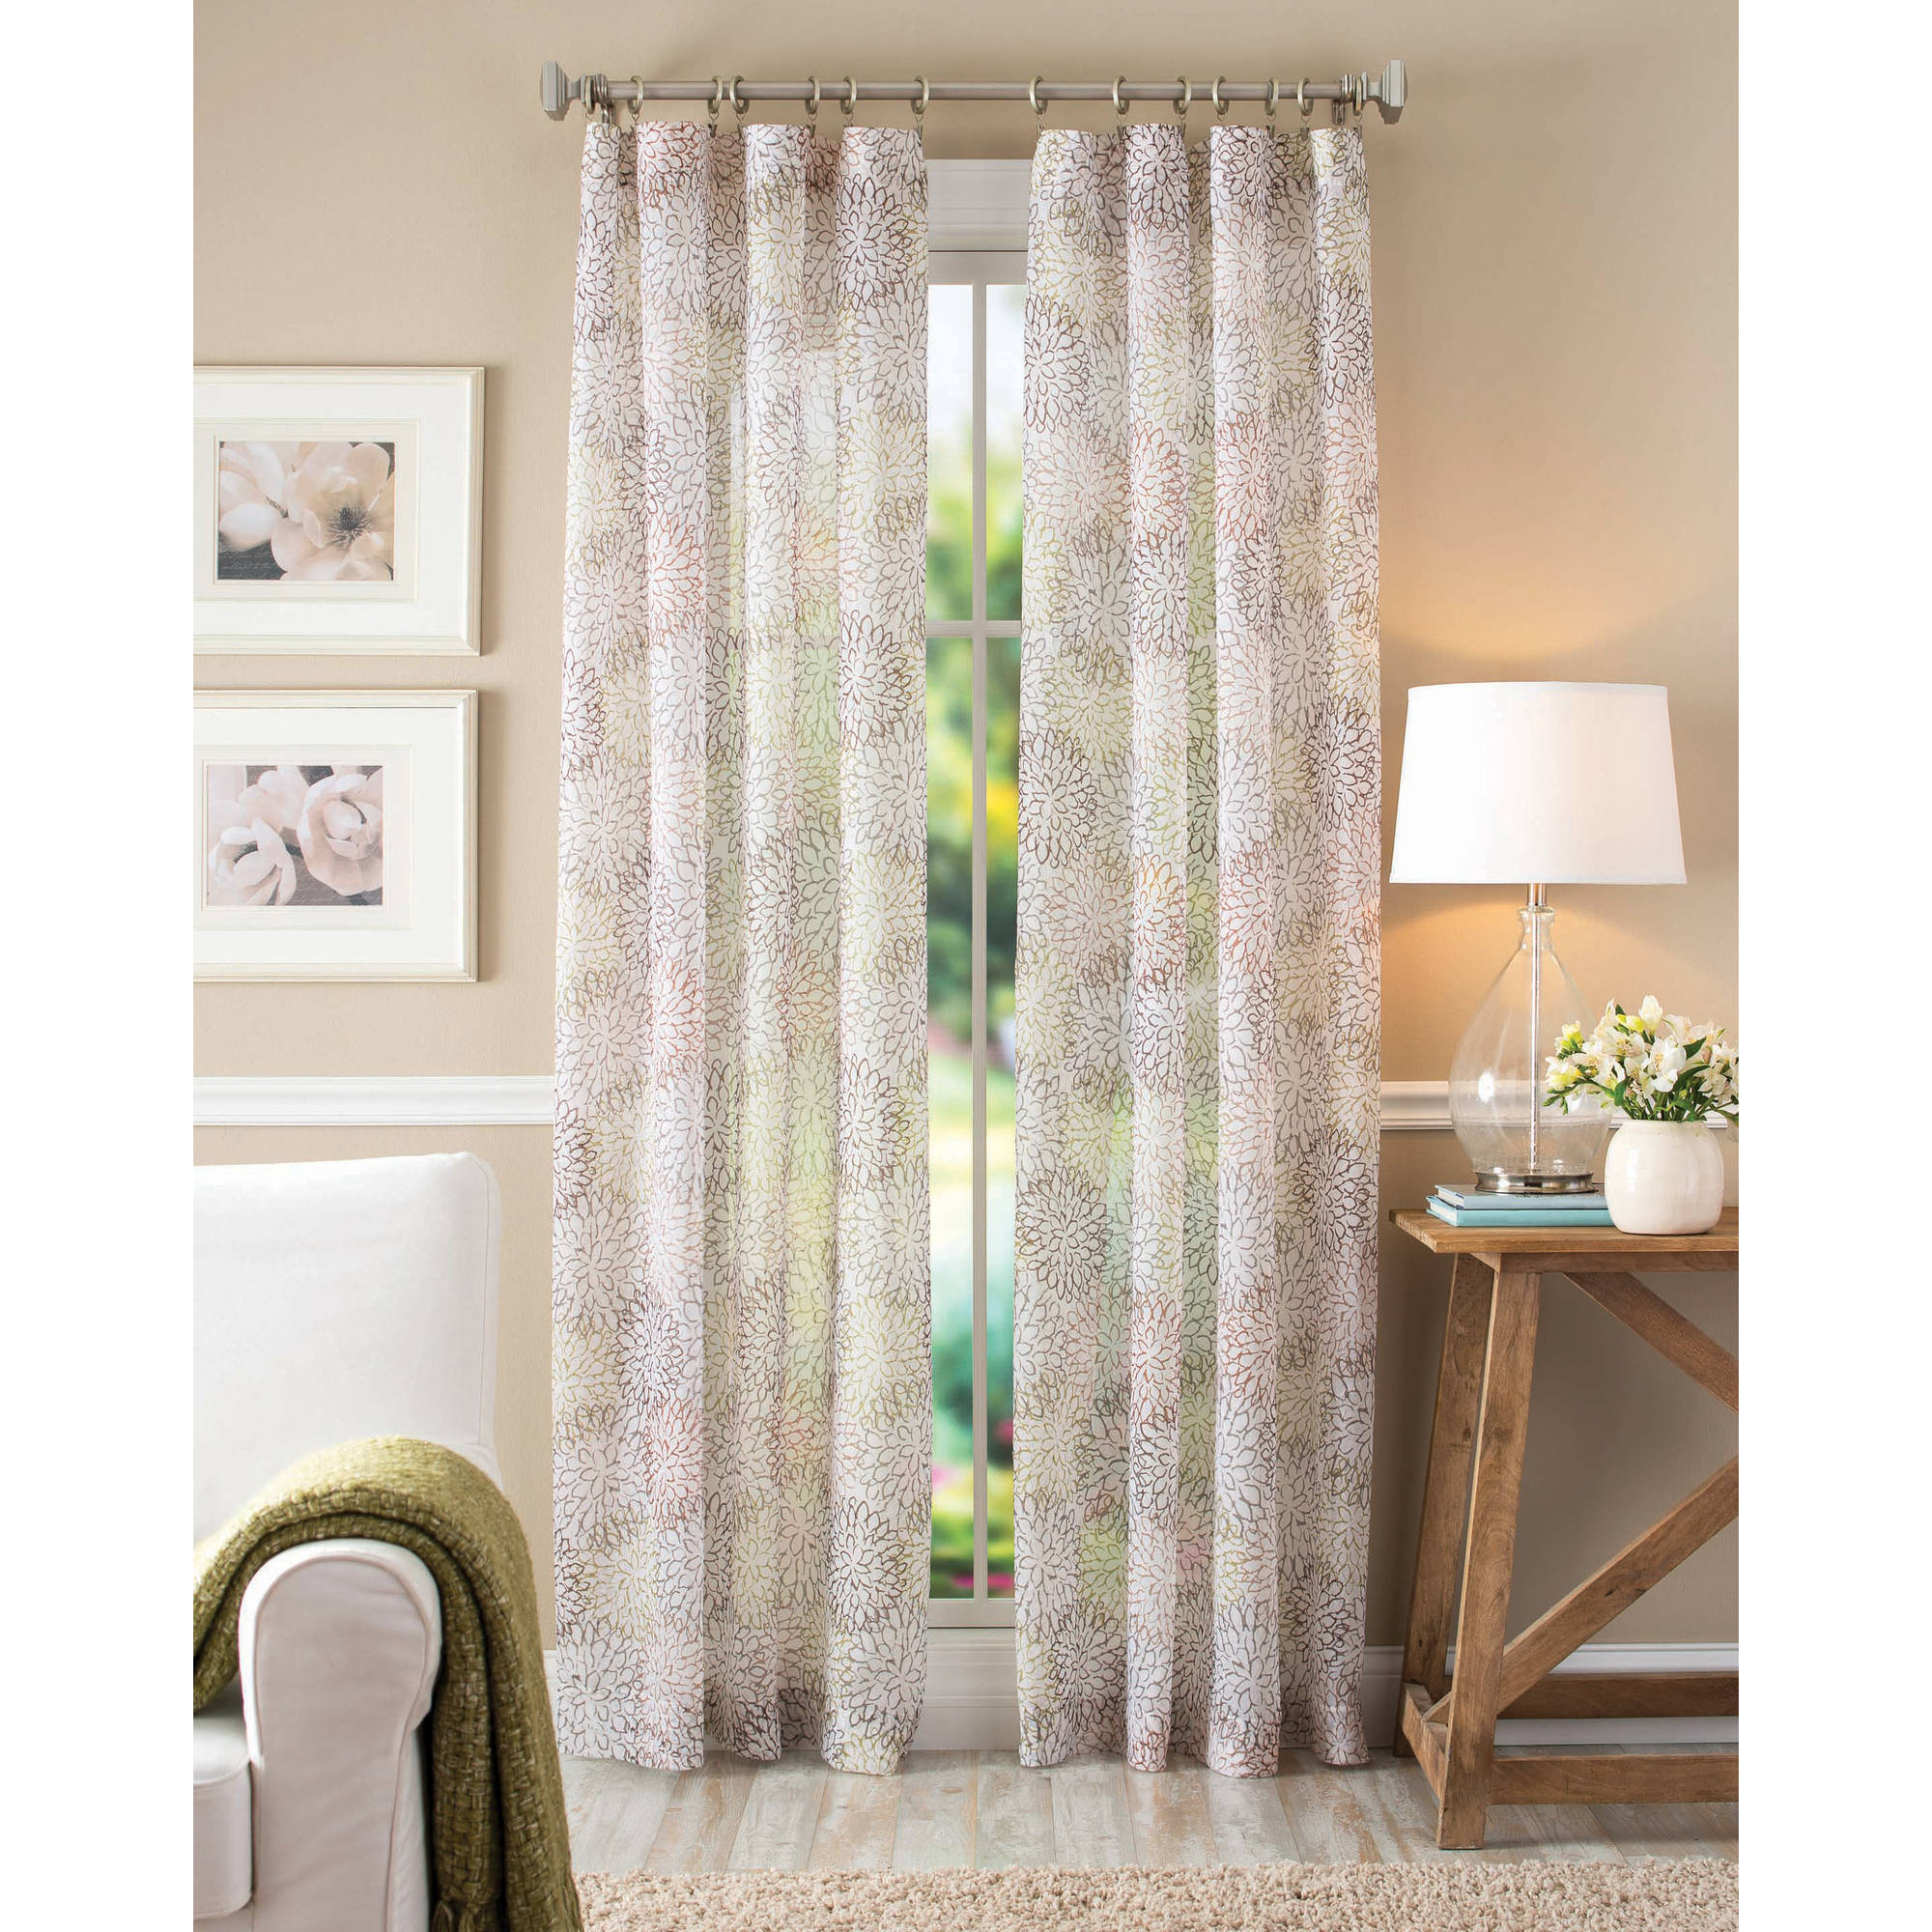 Better Homes and Gardens Floral Blossom Curtain Panel, Color Ivory, Size 51x84